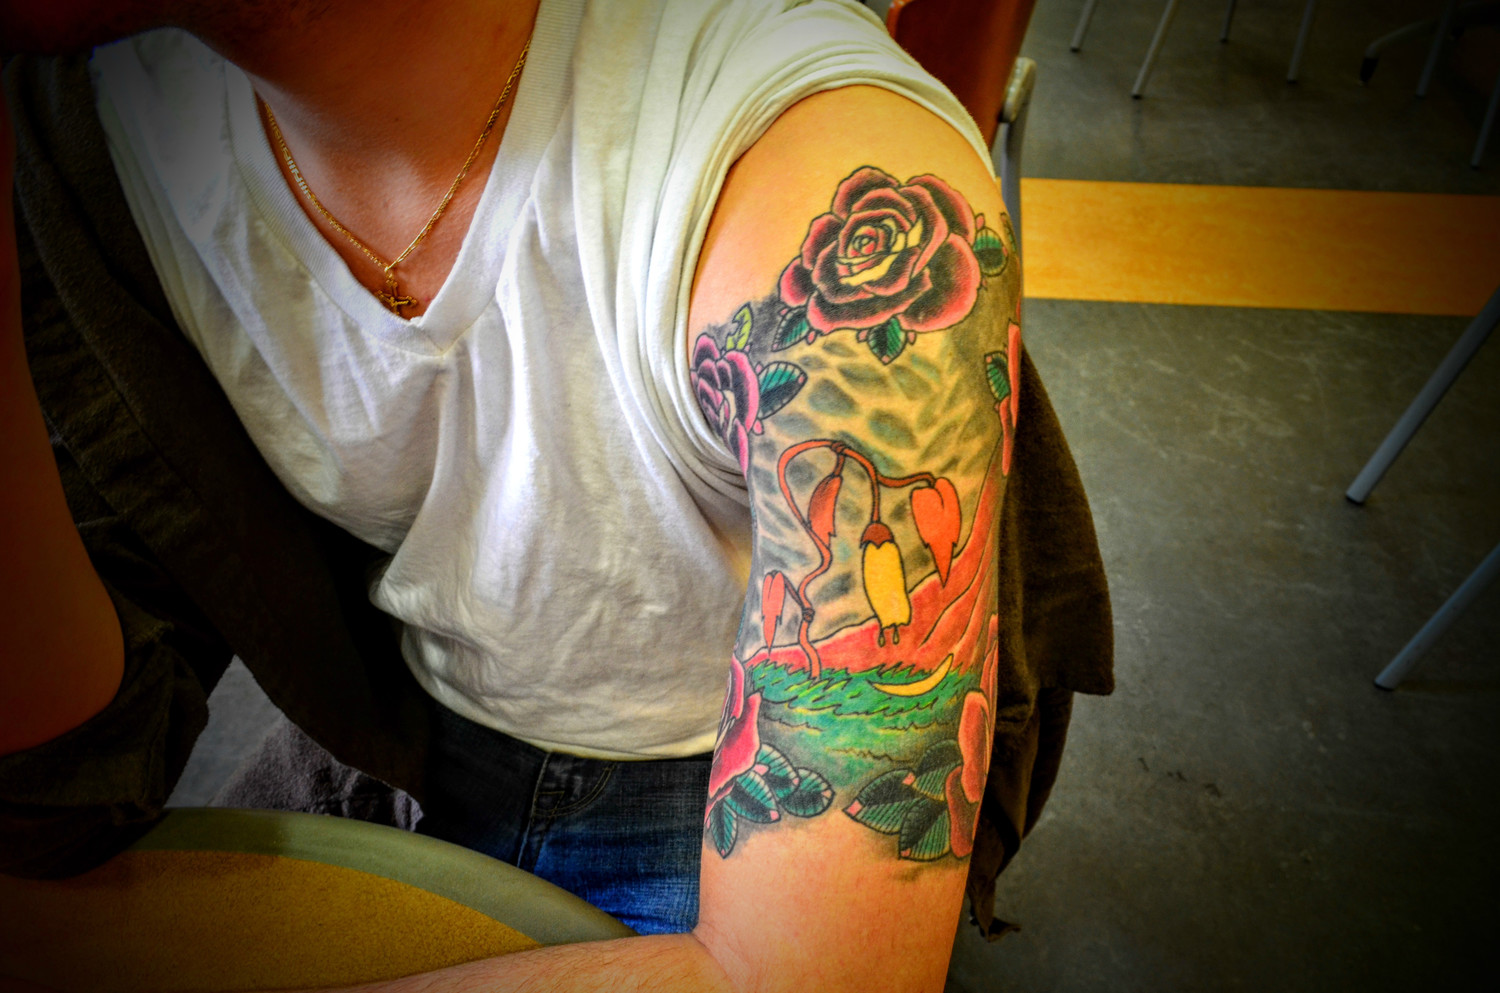 Mark had a tattoo of the film's wilted flower on his arm, which symbolized the need of discovering self-worth.